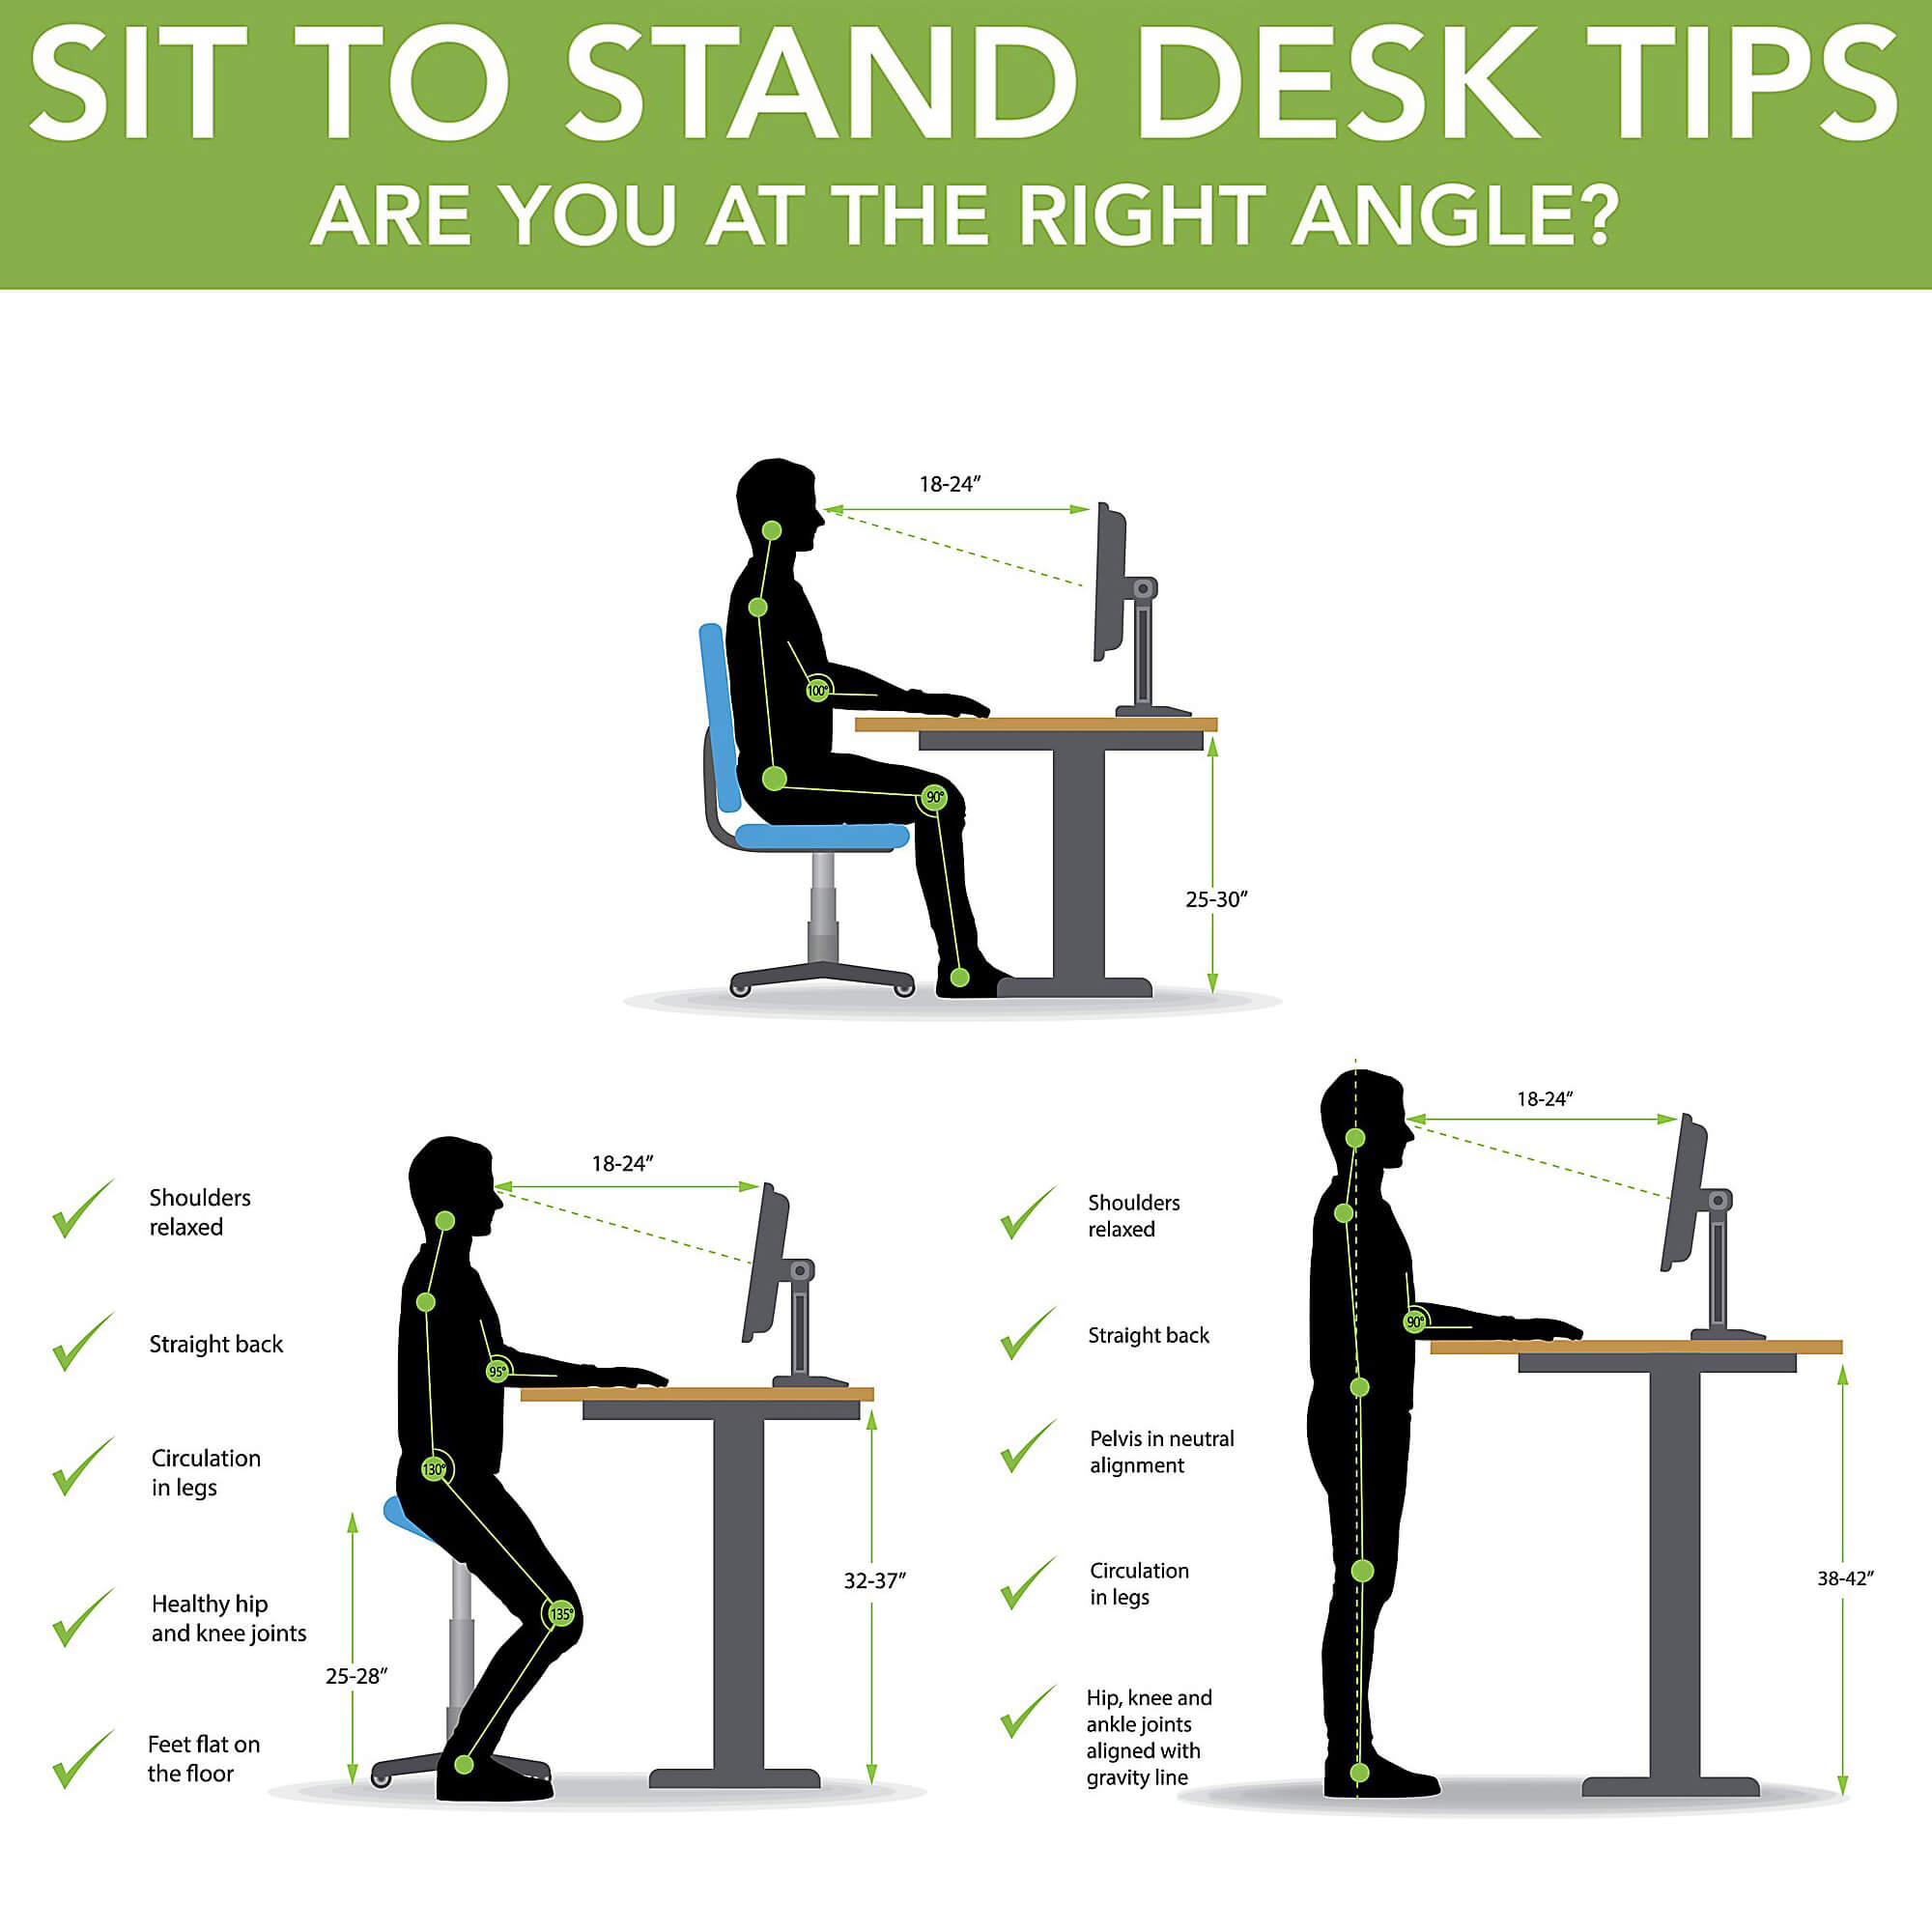 Sit stand desk tips